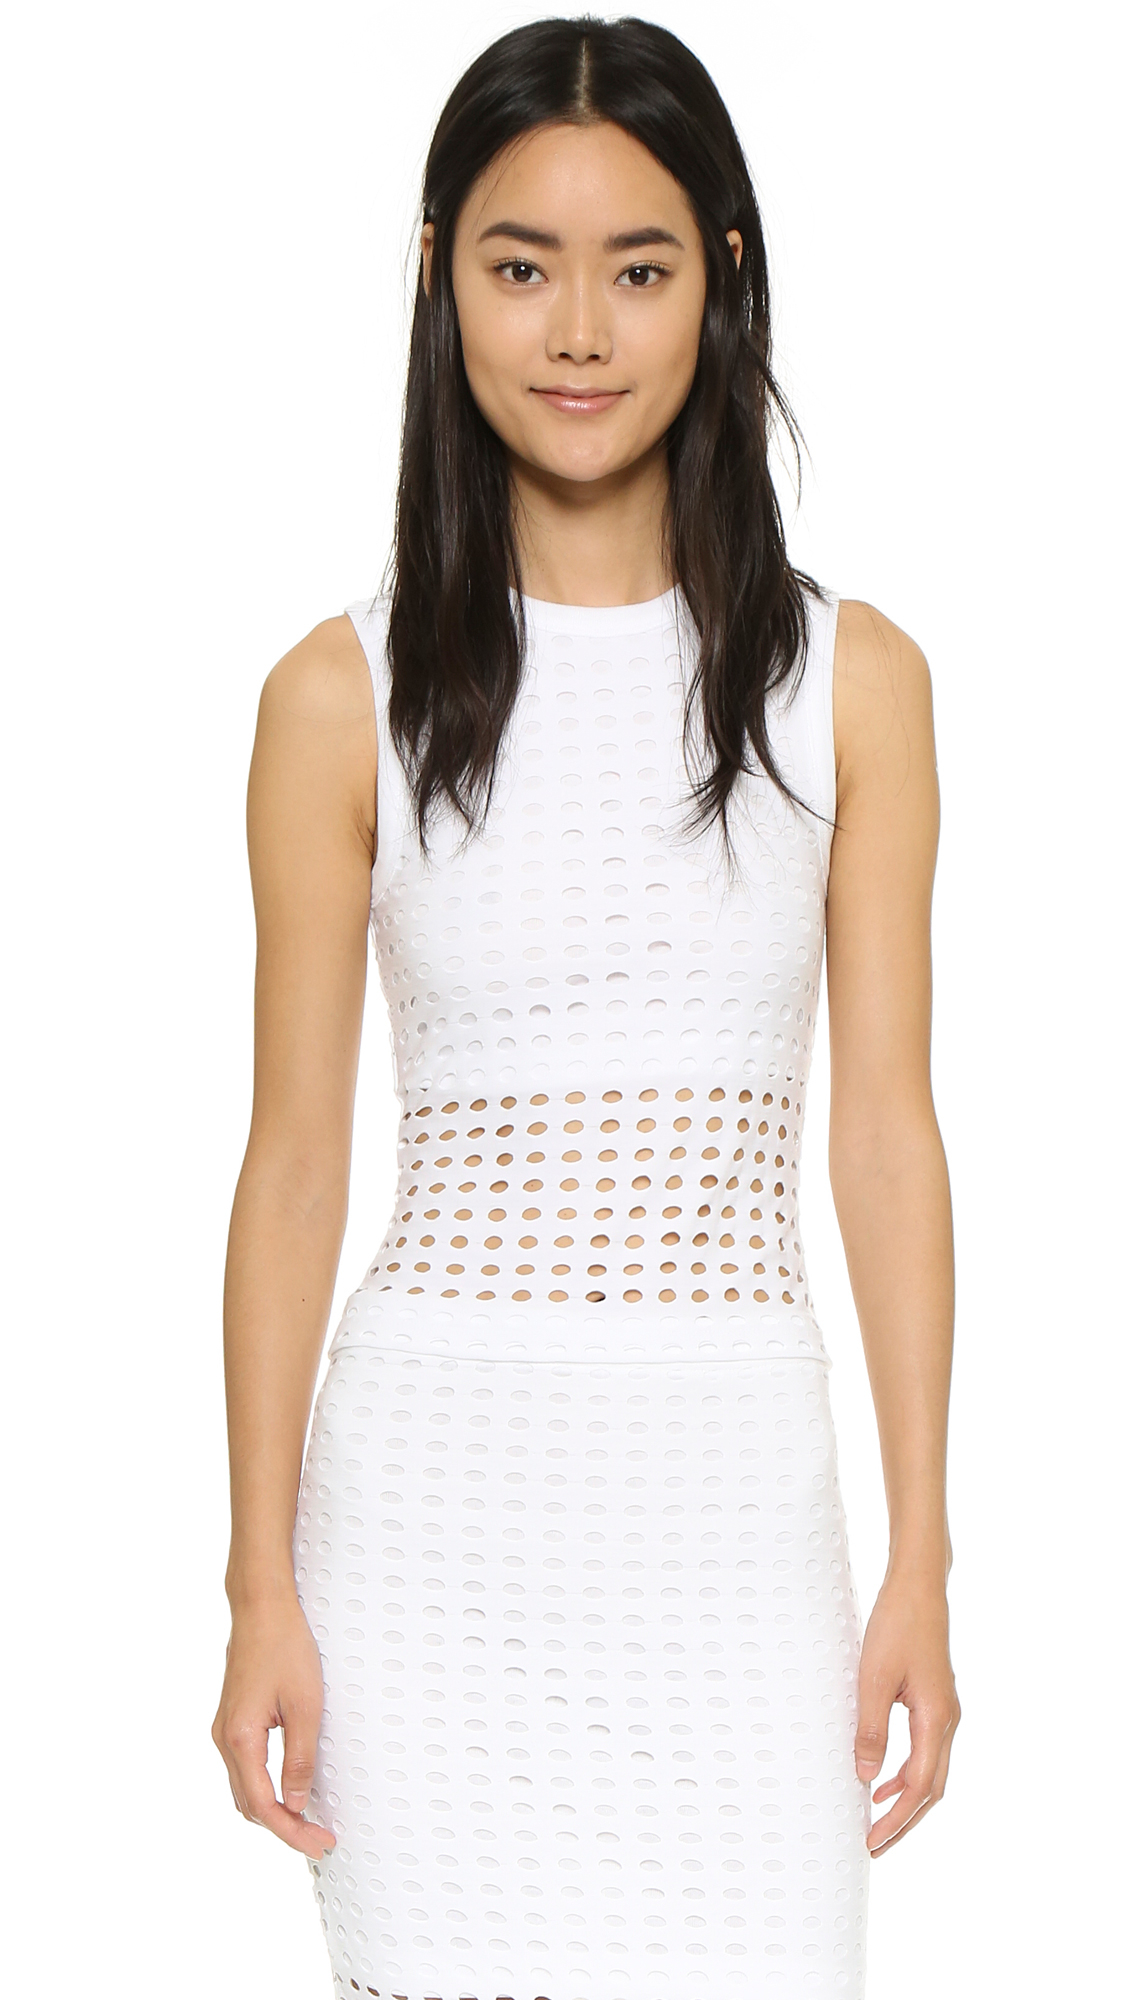 lyst t by alexander wang circular knit tank top in white. Black Bedroom Furniture Sets. Home Design Ideas